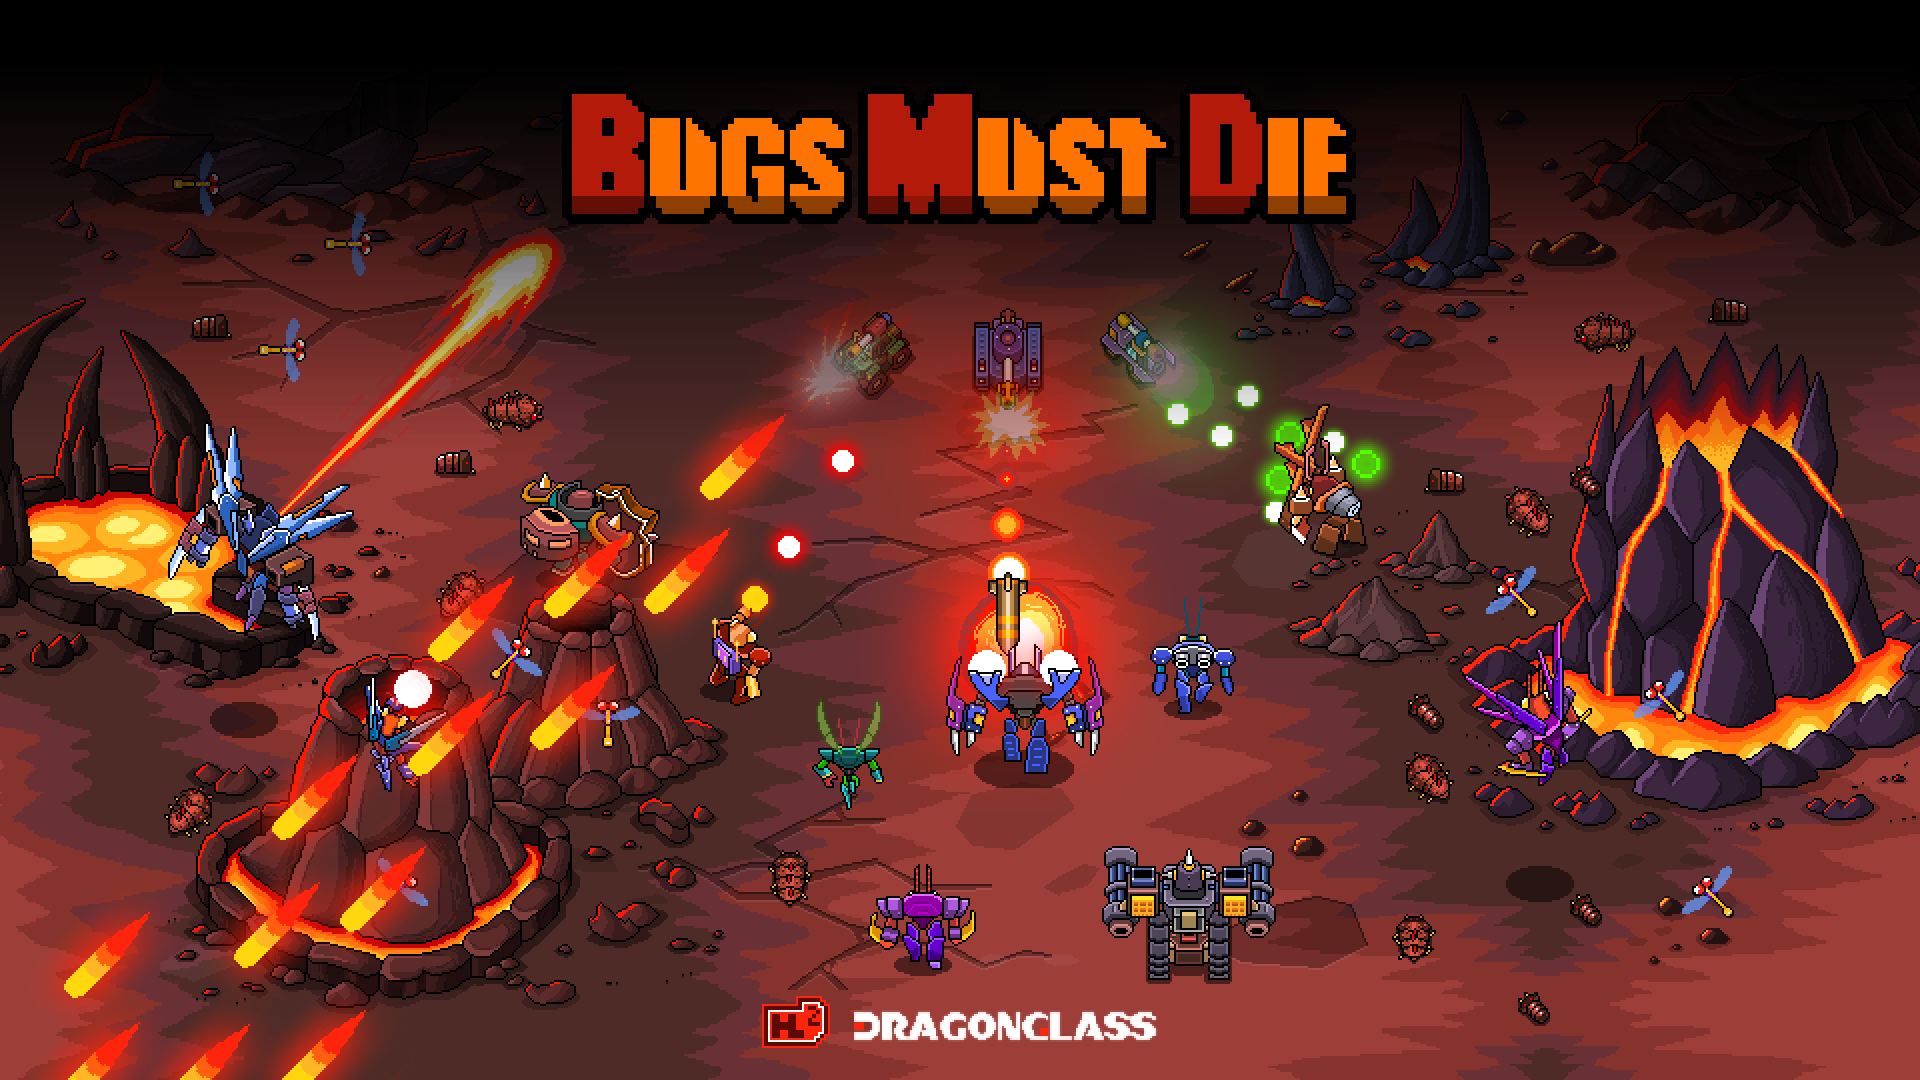 Bugs_Must_Die_Artwork_1.png